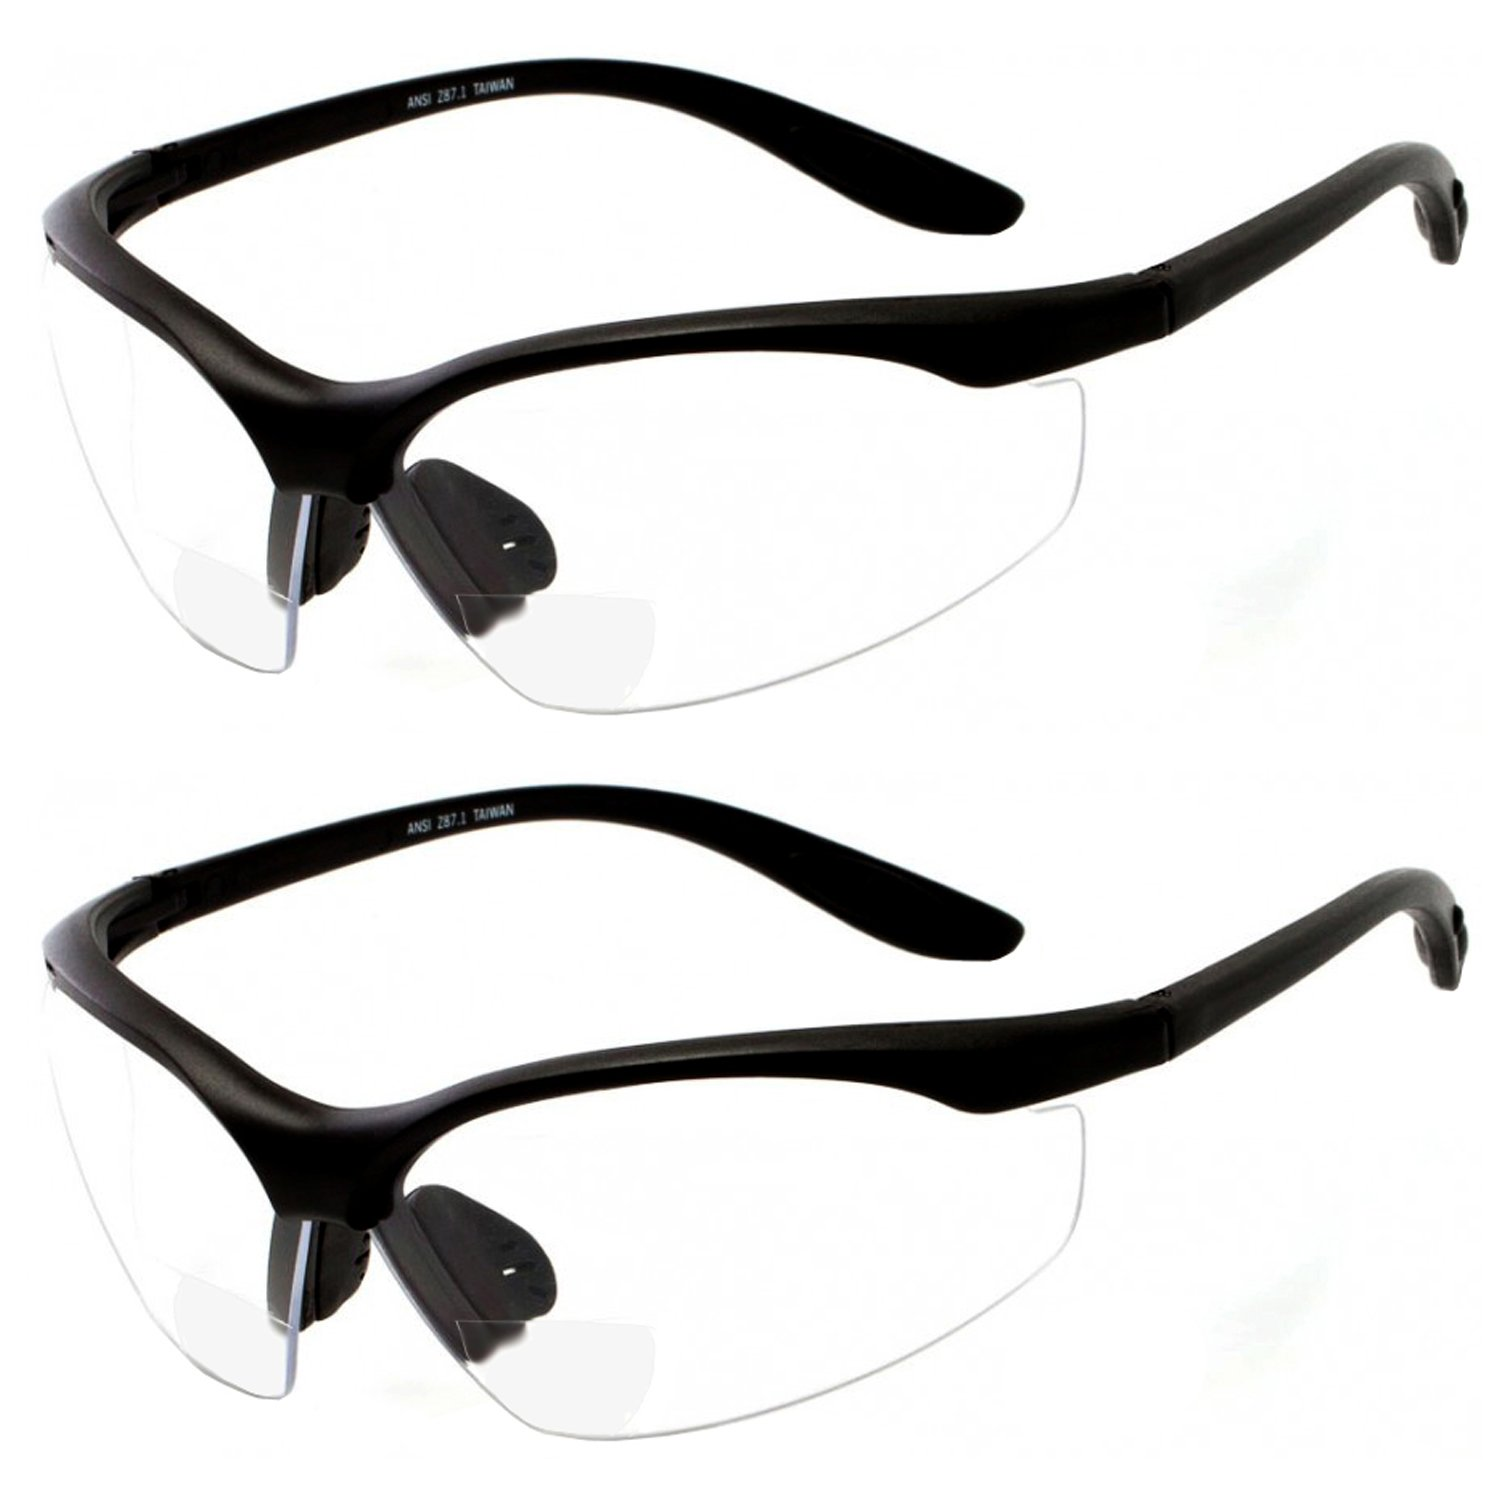 2 Pairs Bifocal Safety Glasses Clear Lens with Reading Corner - Non-Slip Rubber Grip Diopter/+1.50